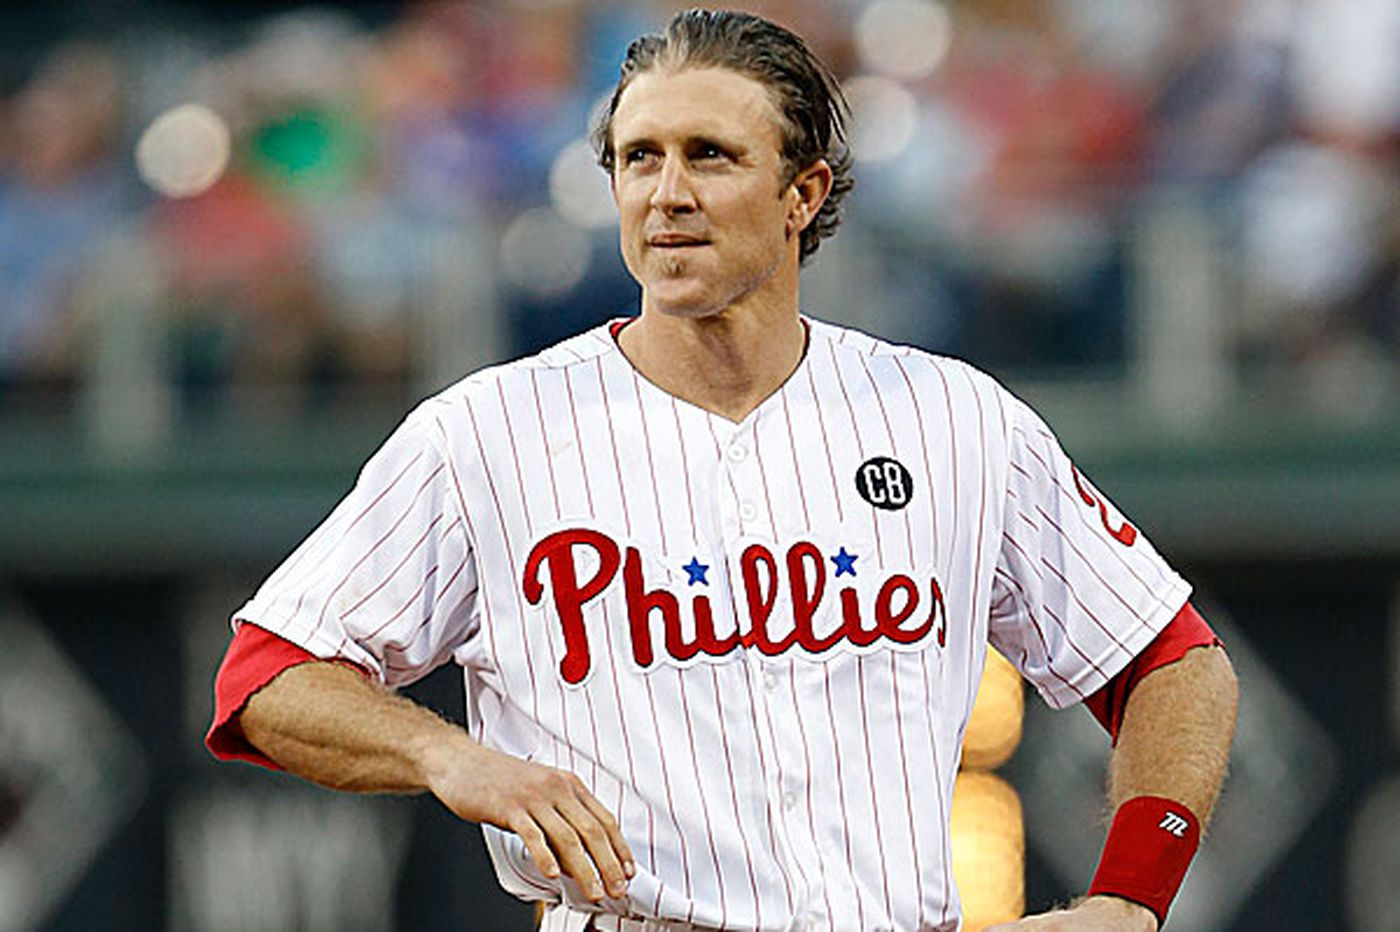 What are the odds the Phillies will trade Chase Utley?